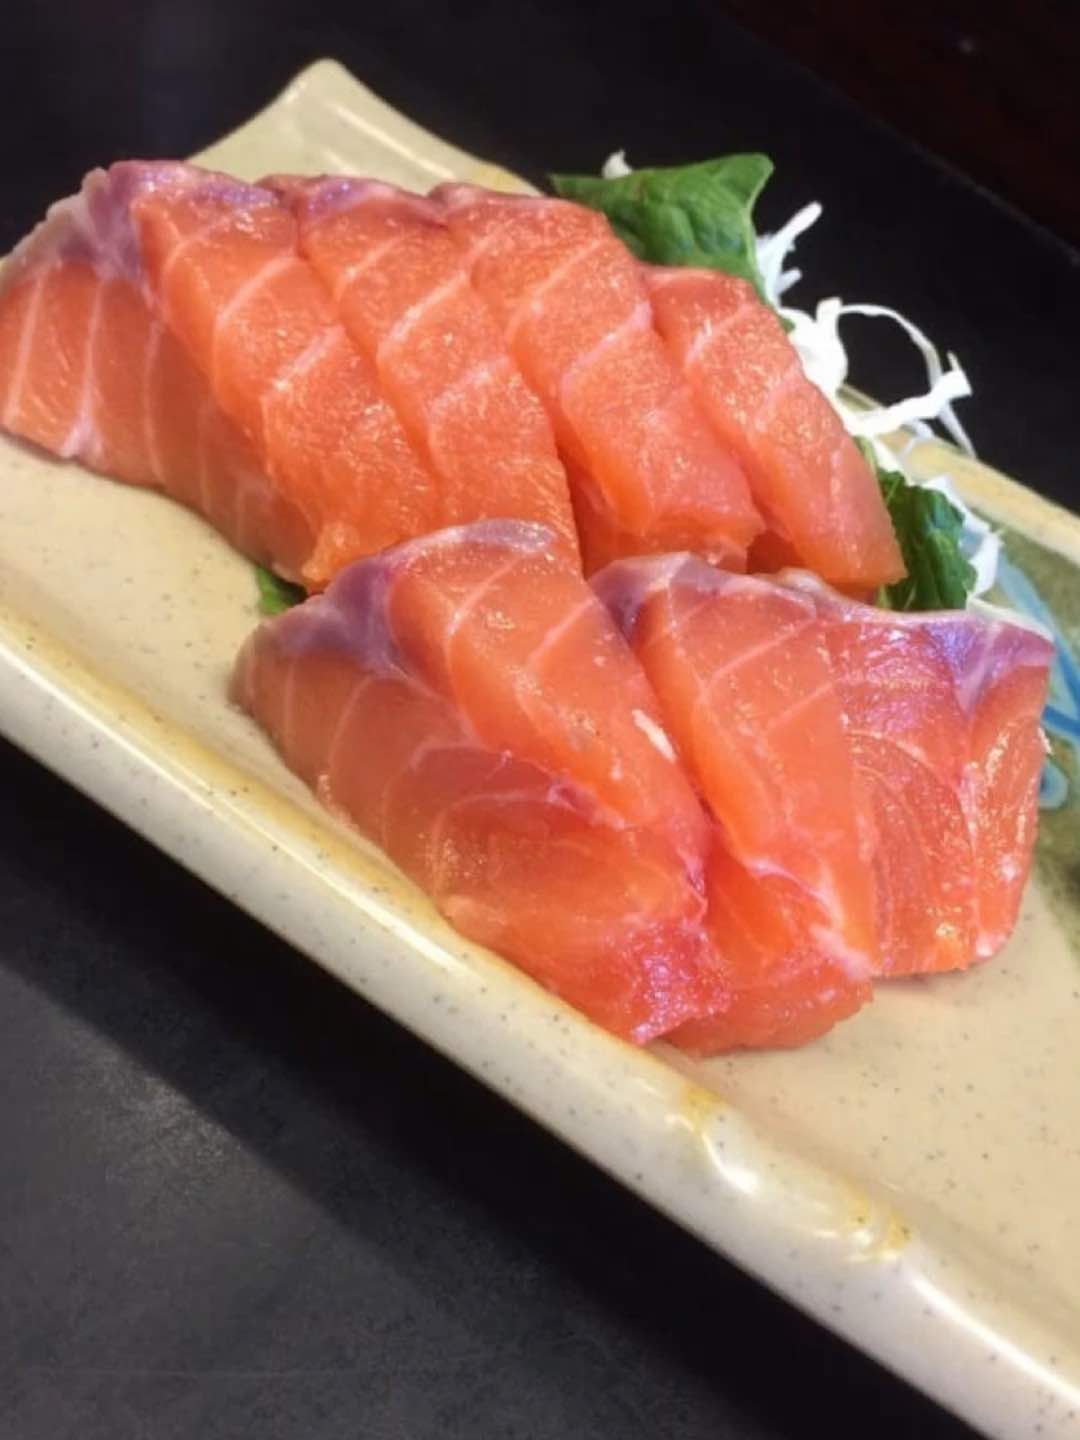 Thumbnail of Had salmon sashimi and it was great!